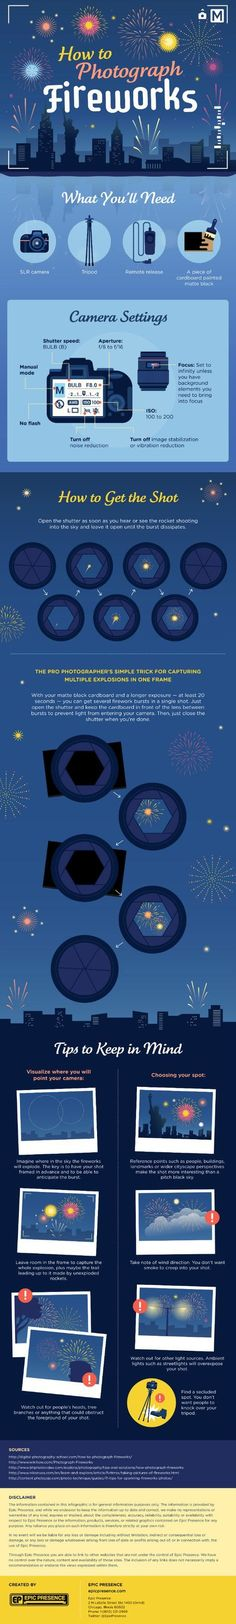 Better Pictures - Tips You Can Use to Take Better Photos of Fireworks To anybody wanting to take better photographs today Photography Cheat Sheets, Photography Basics, Photography Lessons, Photography Camera, Night Photography, Photography Business, Photography Tutorials, Digital Photography, Amazing Photography